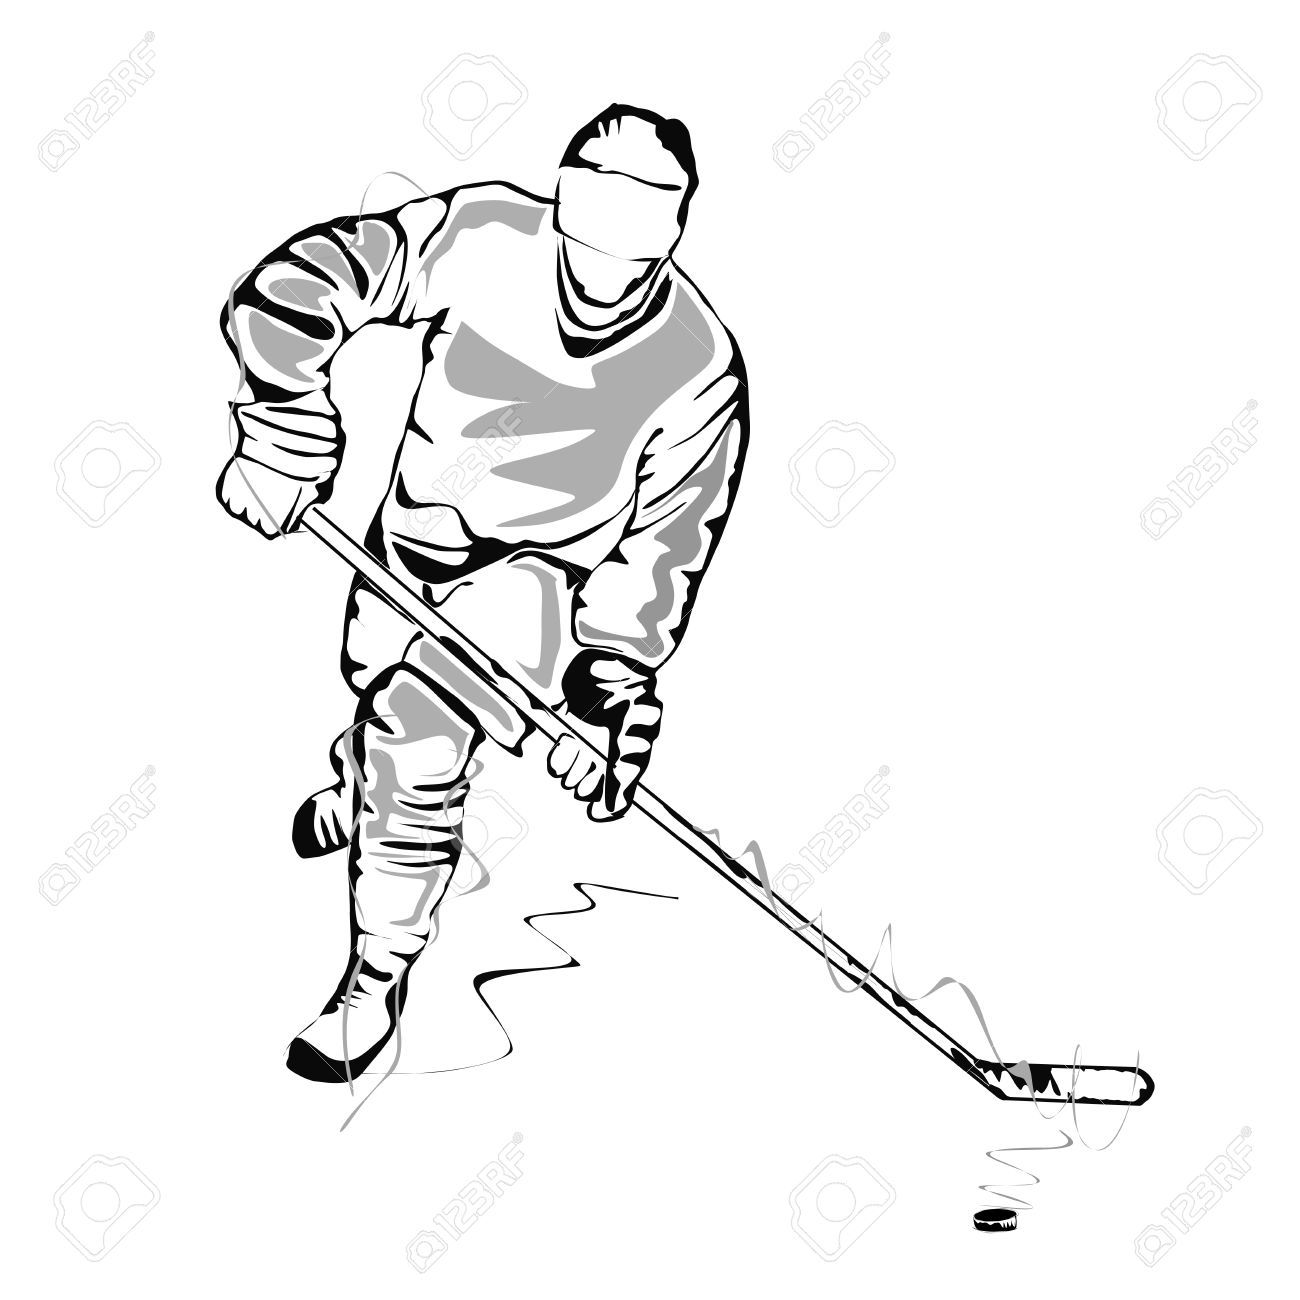 Hockey Player Sketch Hockey Players Hockey Drawing Sports Drawings